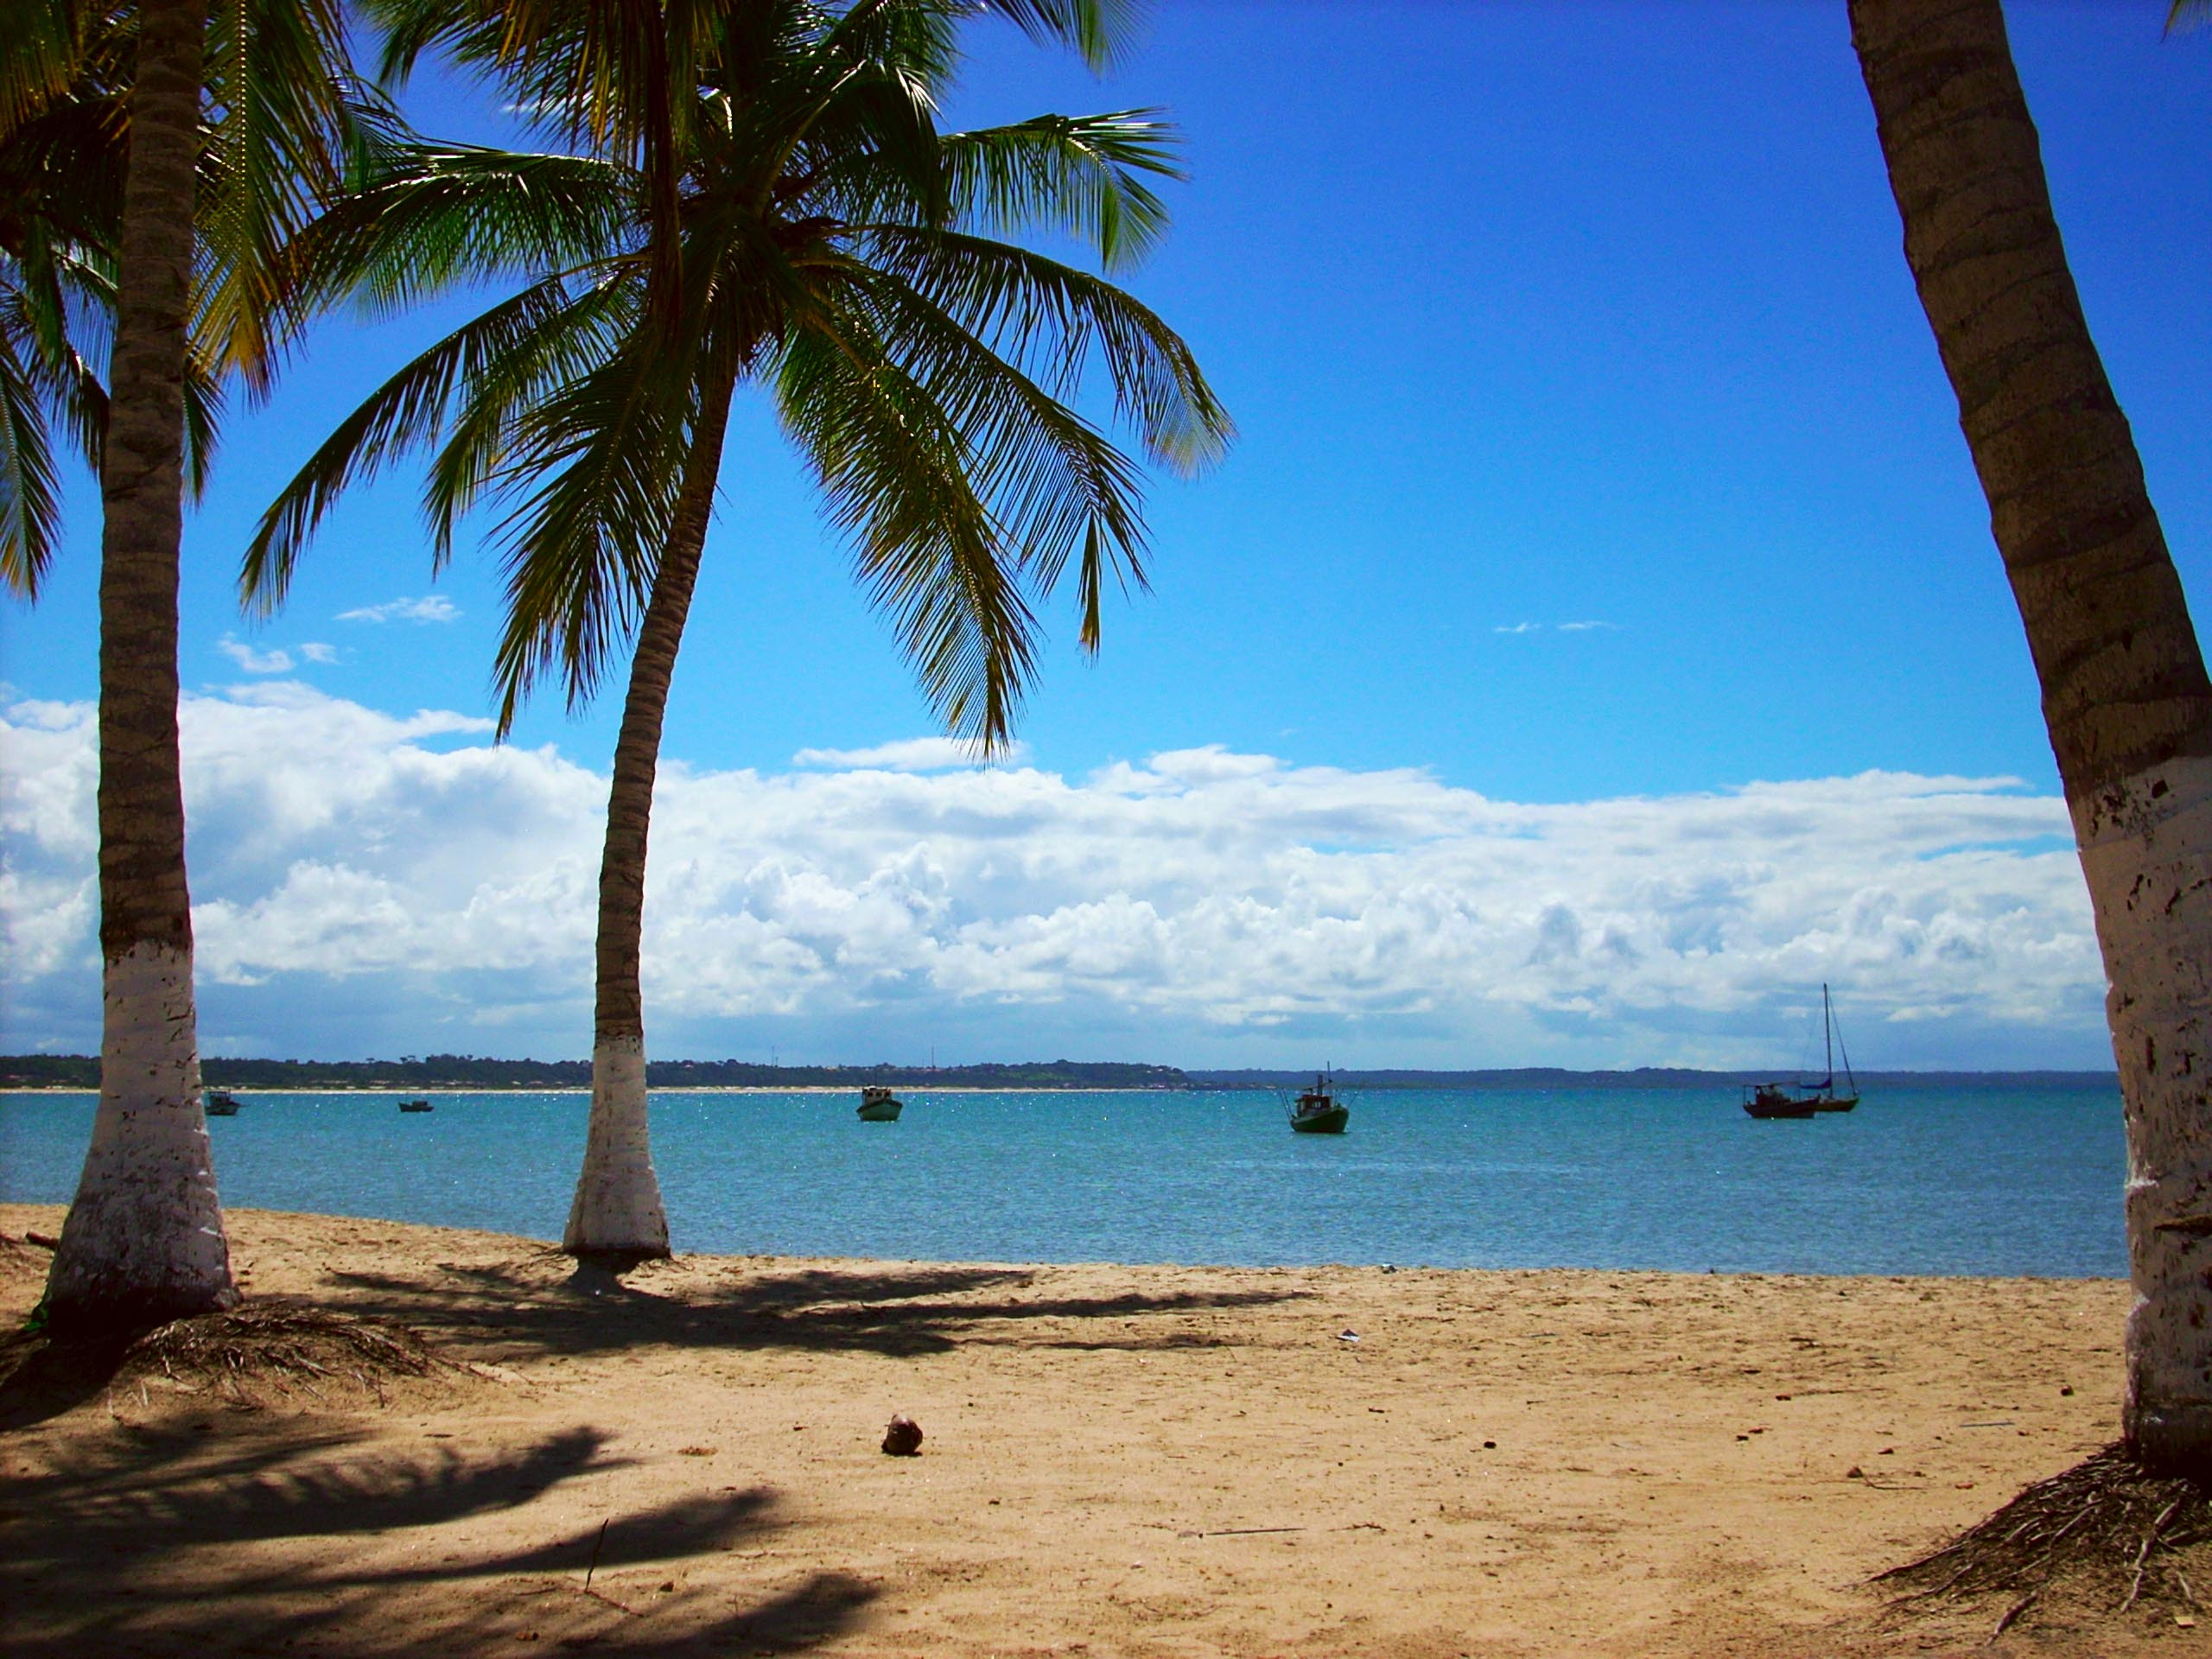 If you want views like this, the best time to visit Porto Seguro lies around the months of January and February.